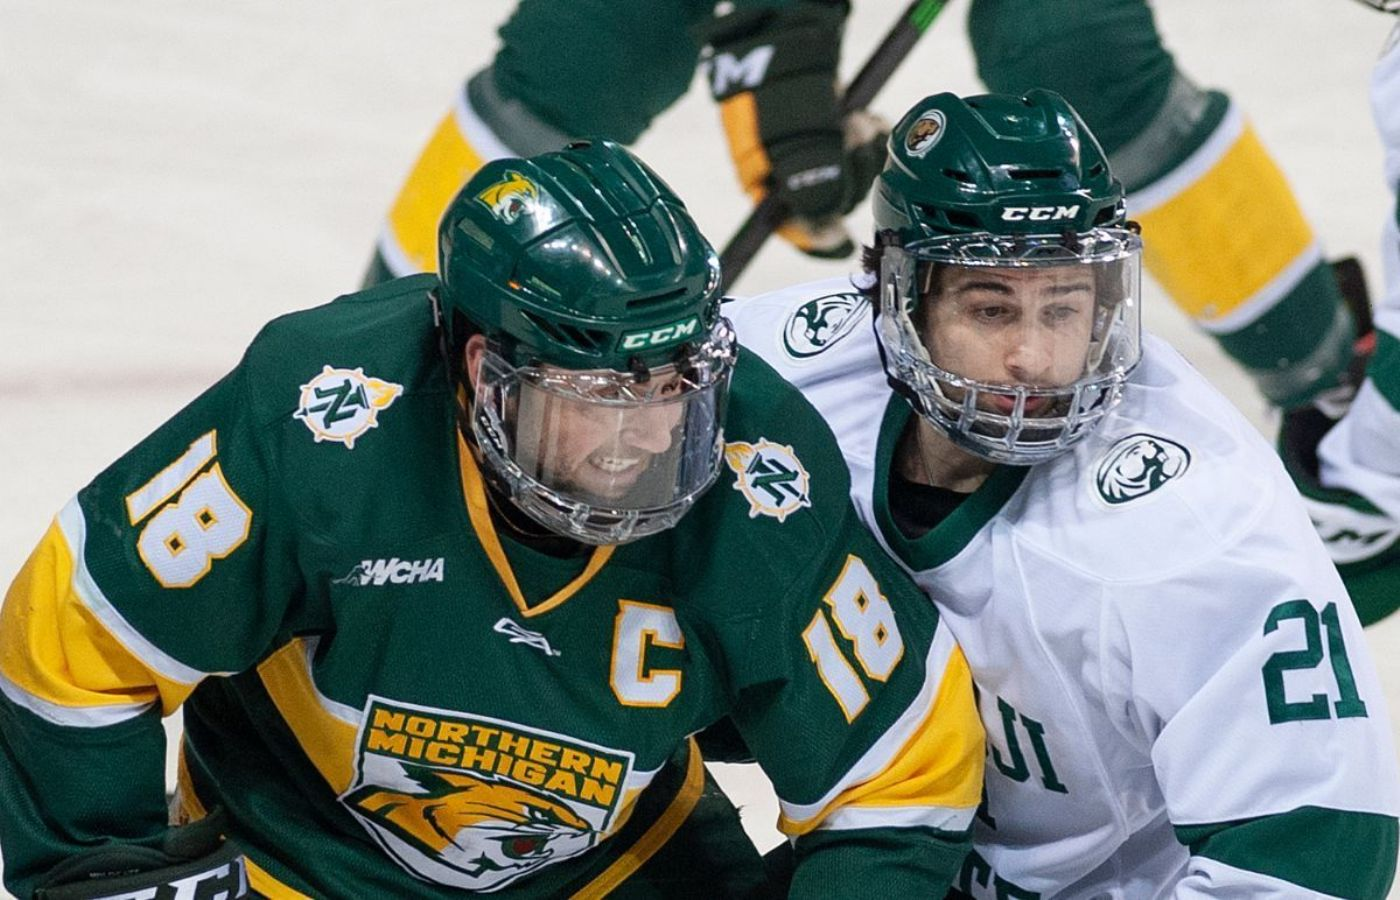 Beavers battle back, Northern Michigan steals win in 3-on-3 OT